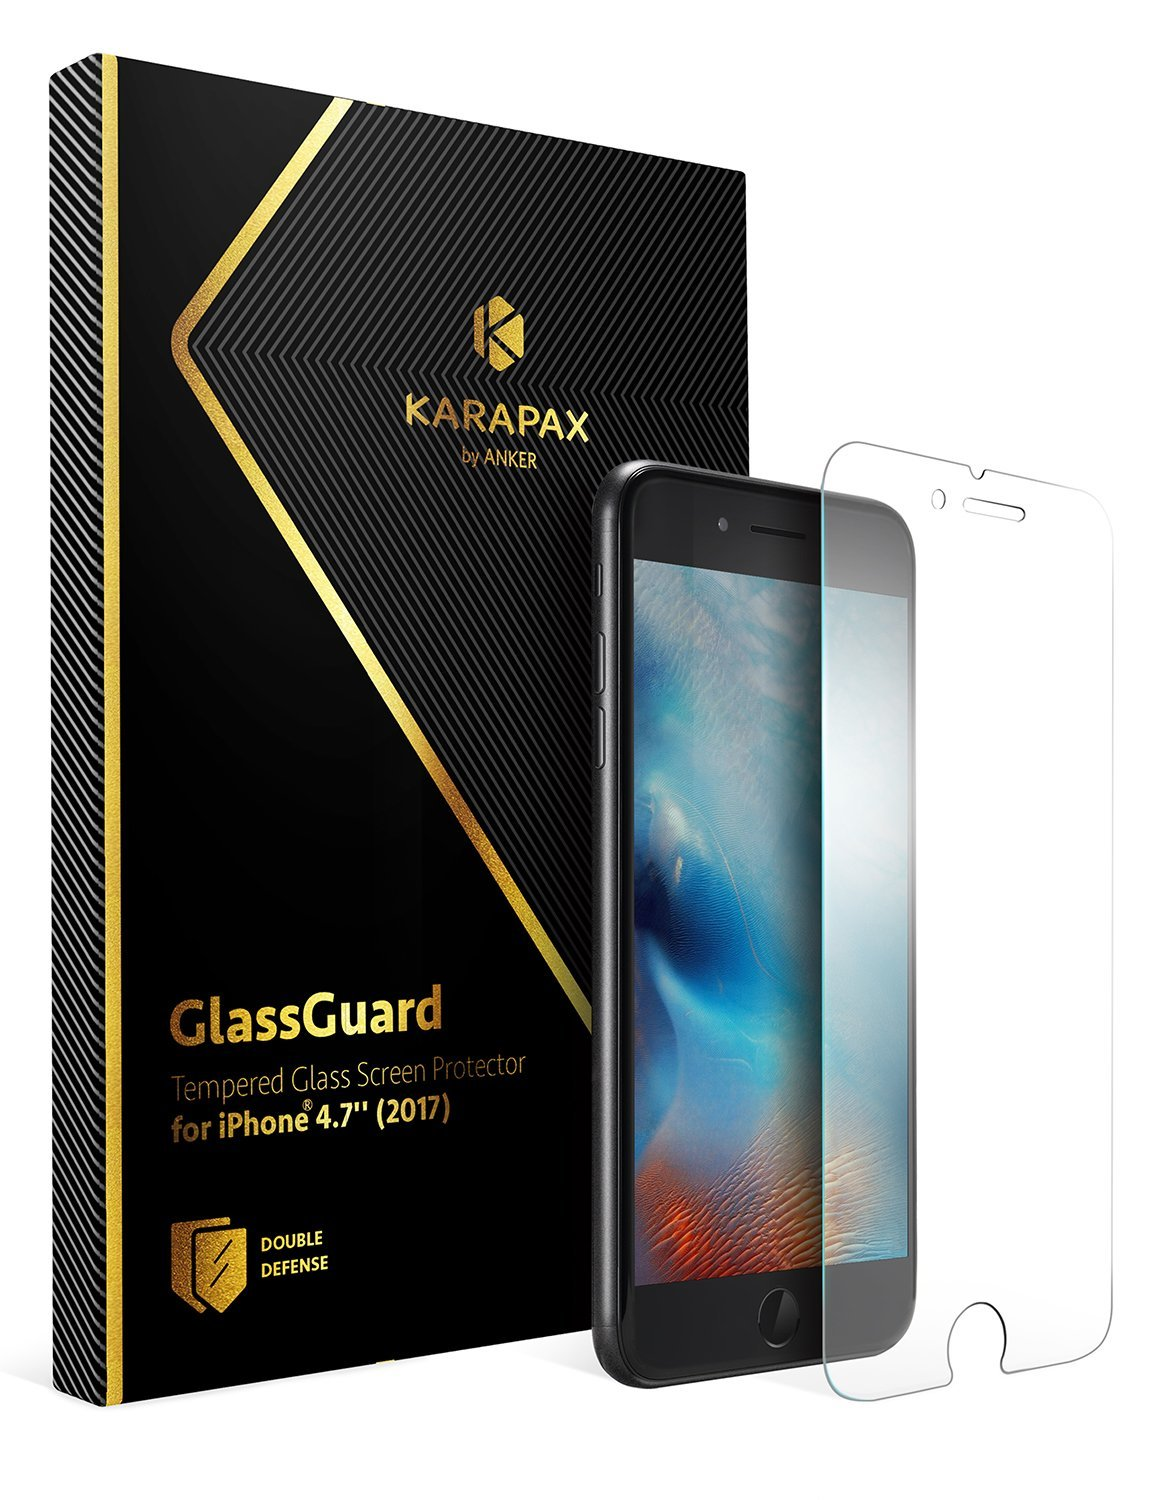 Anker KARAPAX GlassGuard iPhone 8用 強化ガラス液晶保護フィルム【3D Touch対応 / 硬度9H / 飛散防止】